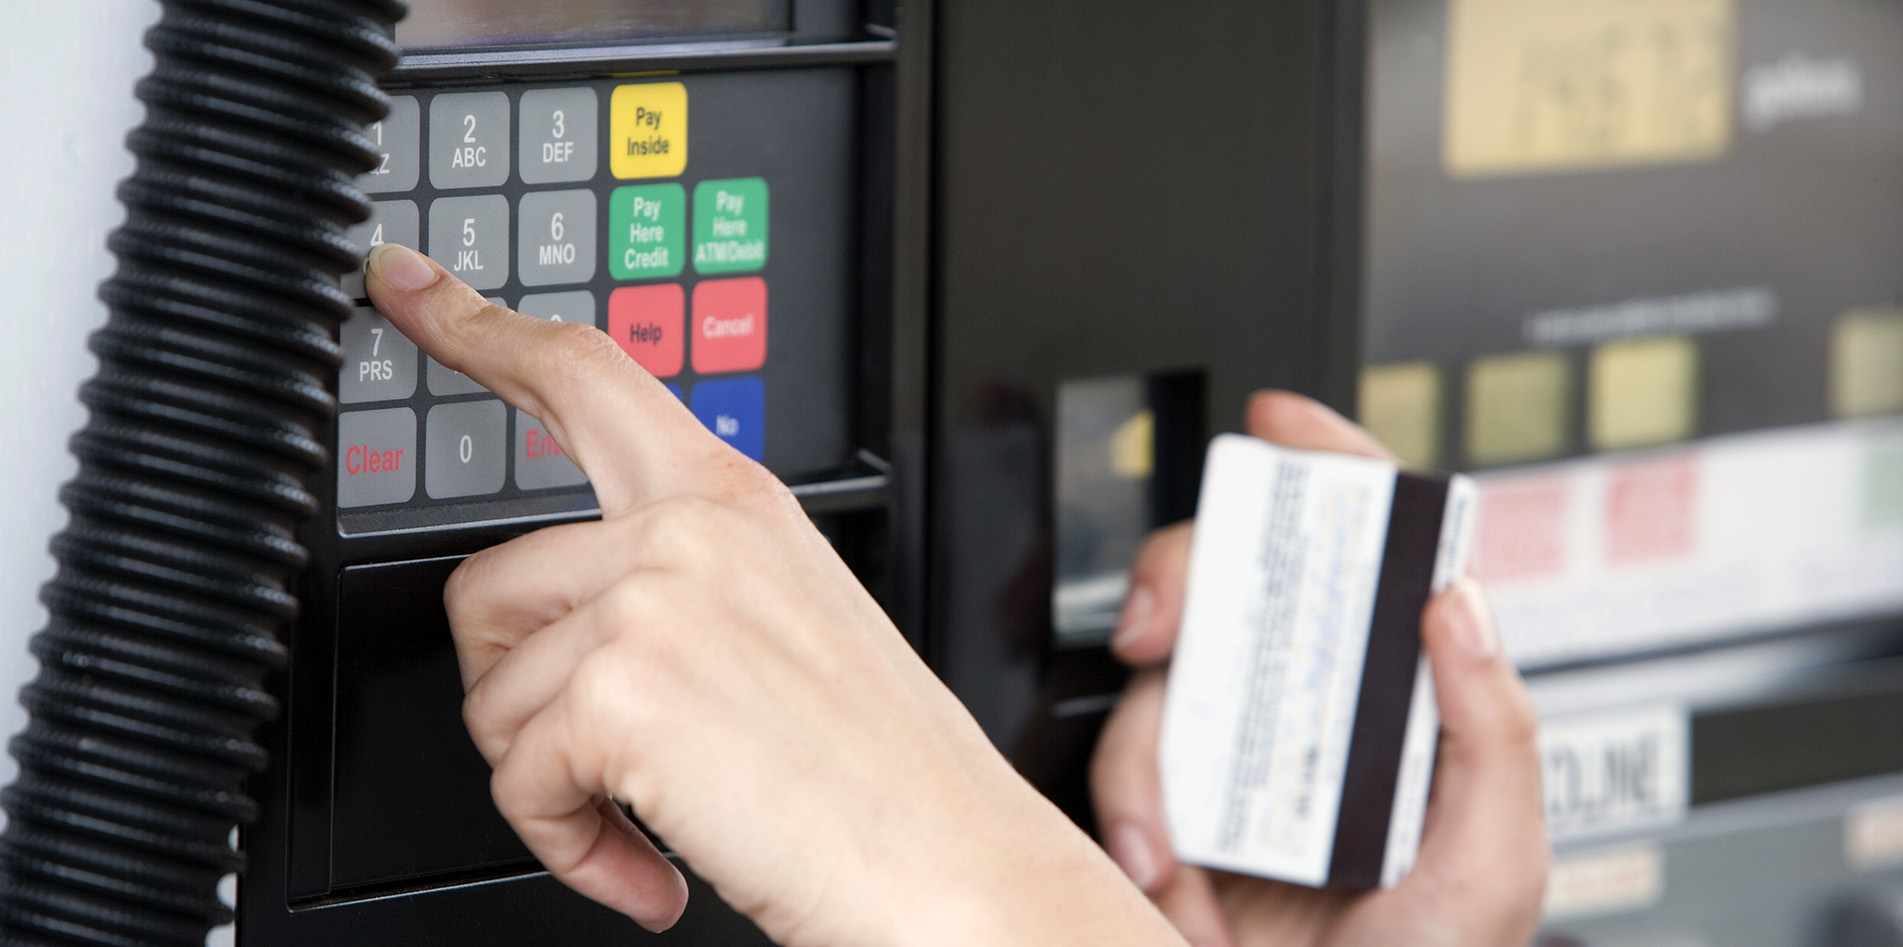 How To Detect a Card Skimmer at a Gas Pump